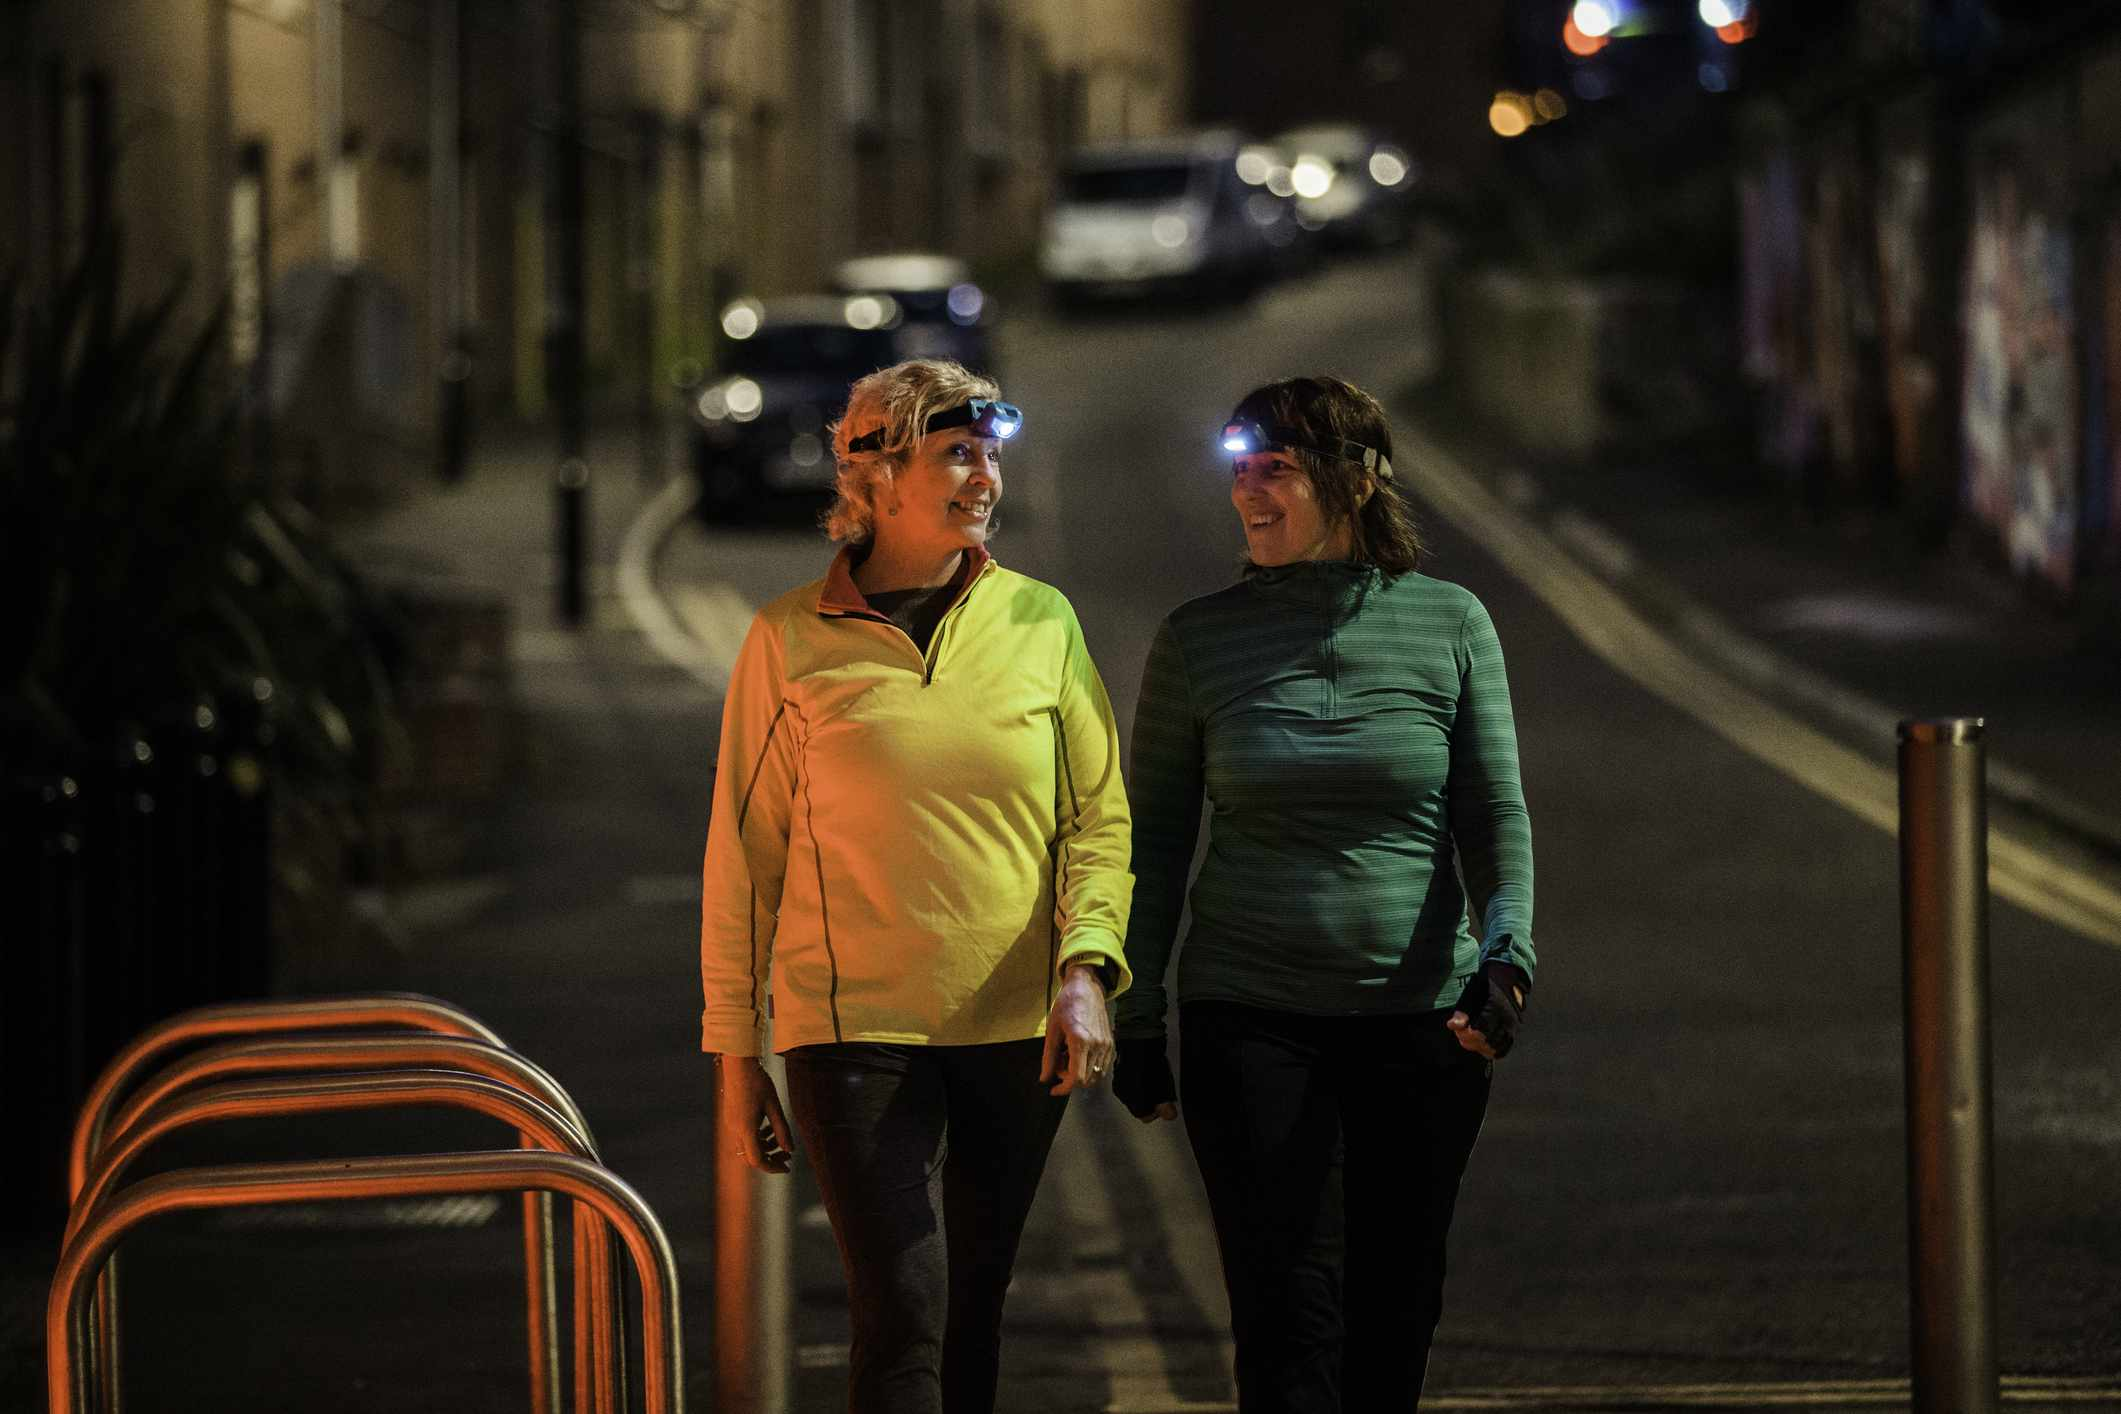 Two Friends Walking Together At Night